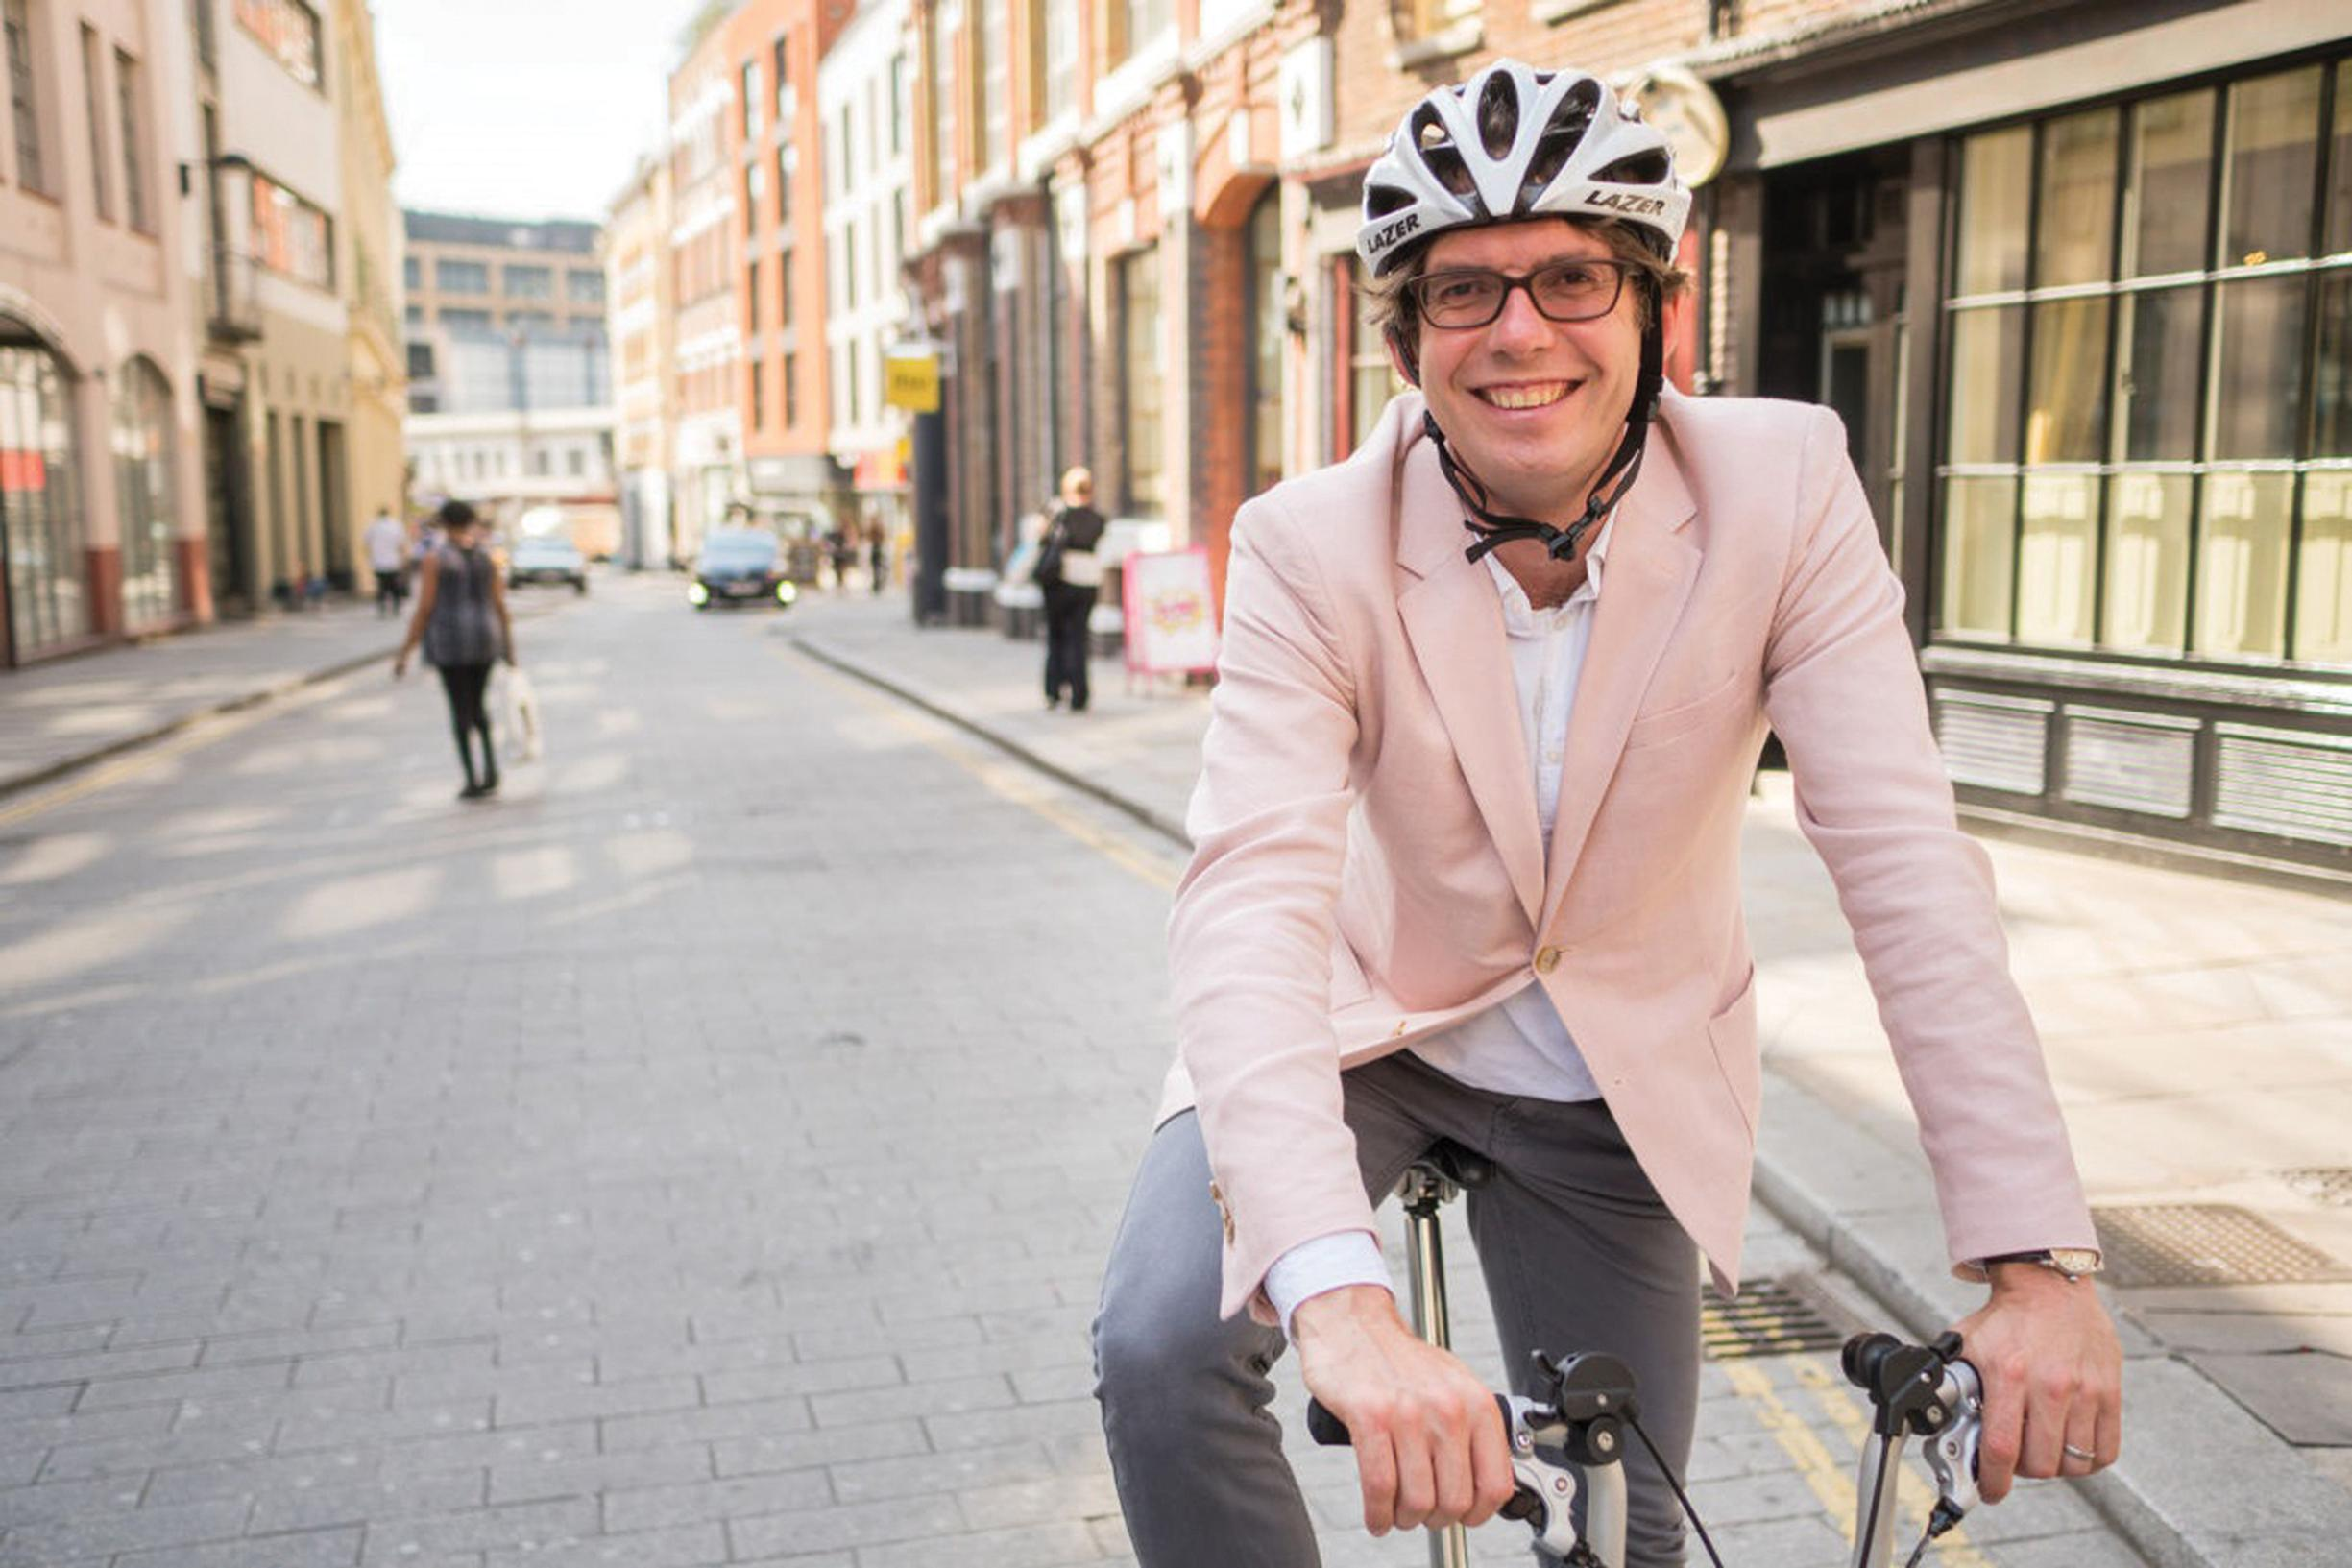 Brice refocuses Sustrans and announces NCN review